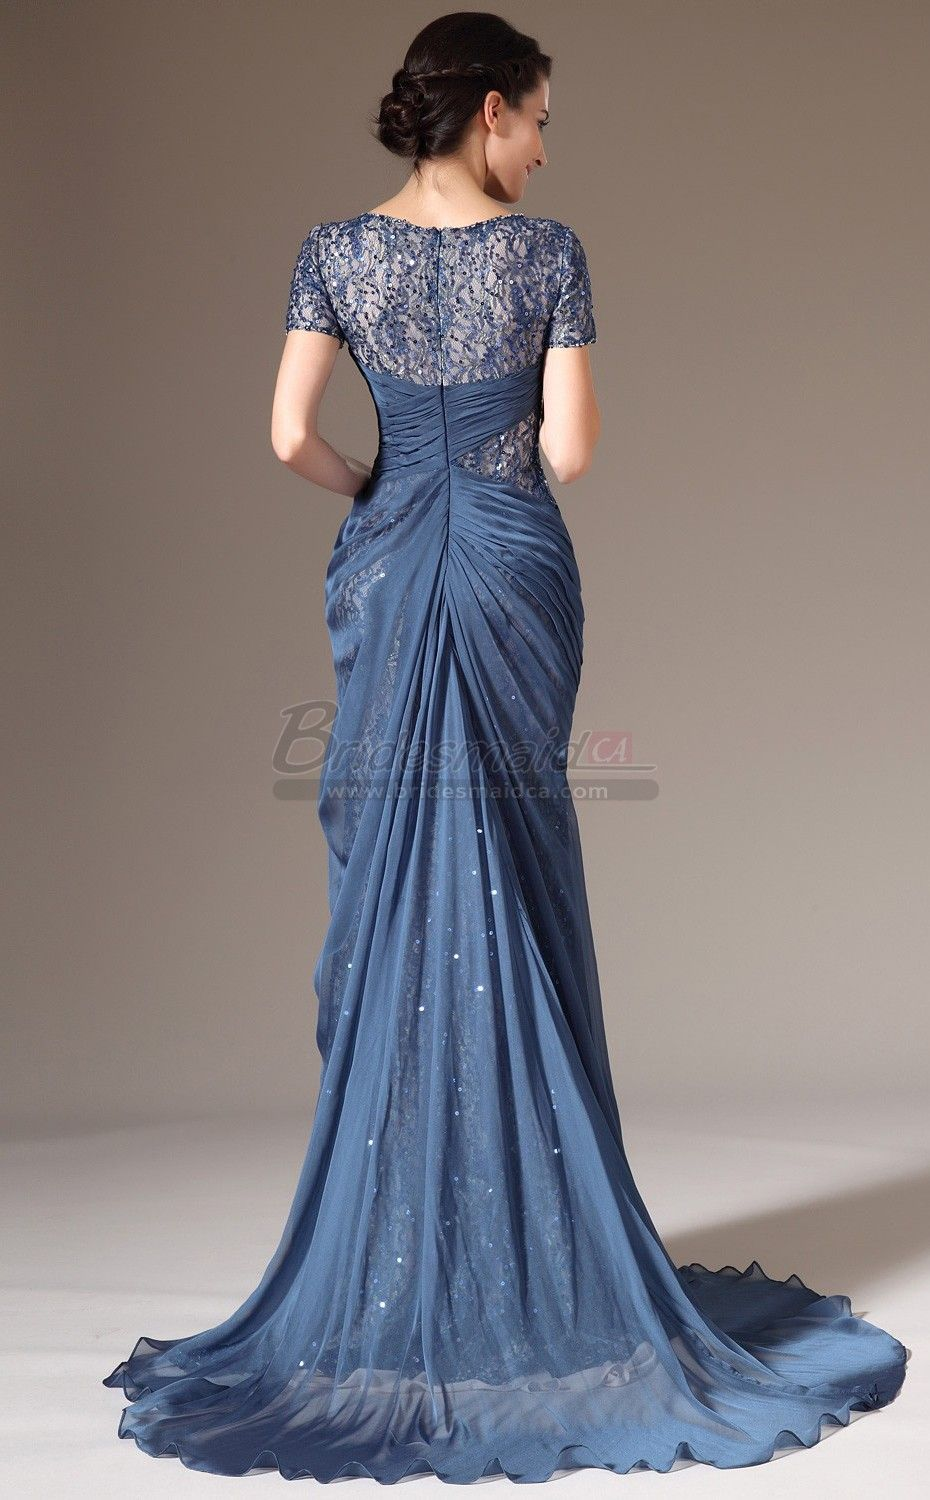 Ink Blue Long Chiffon and Lace Empire Waist Mermaid Bridesmaid Dress ...